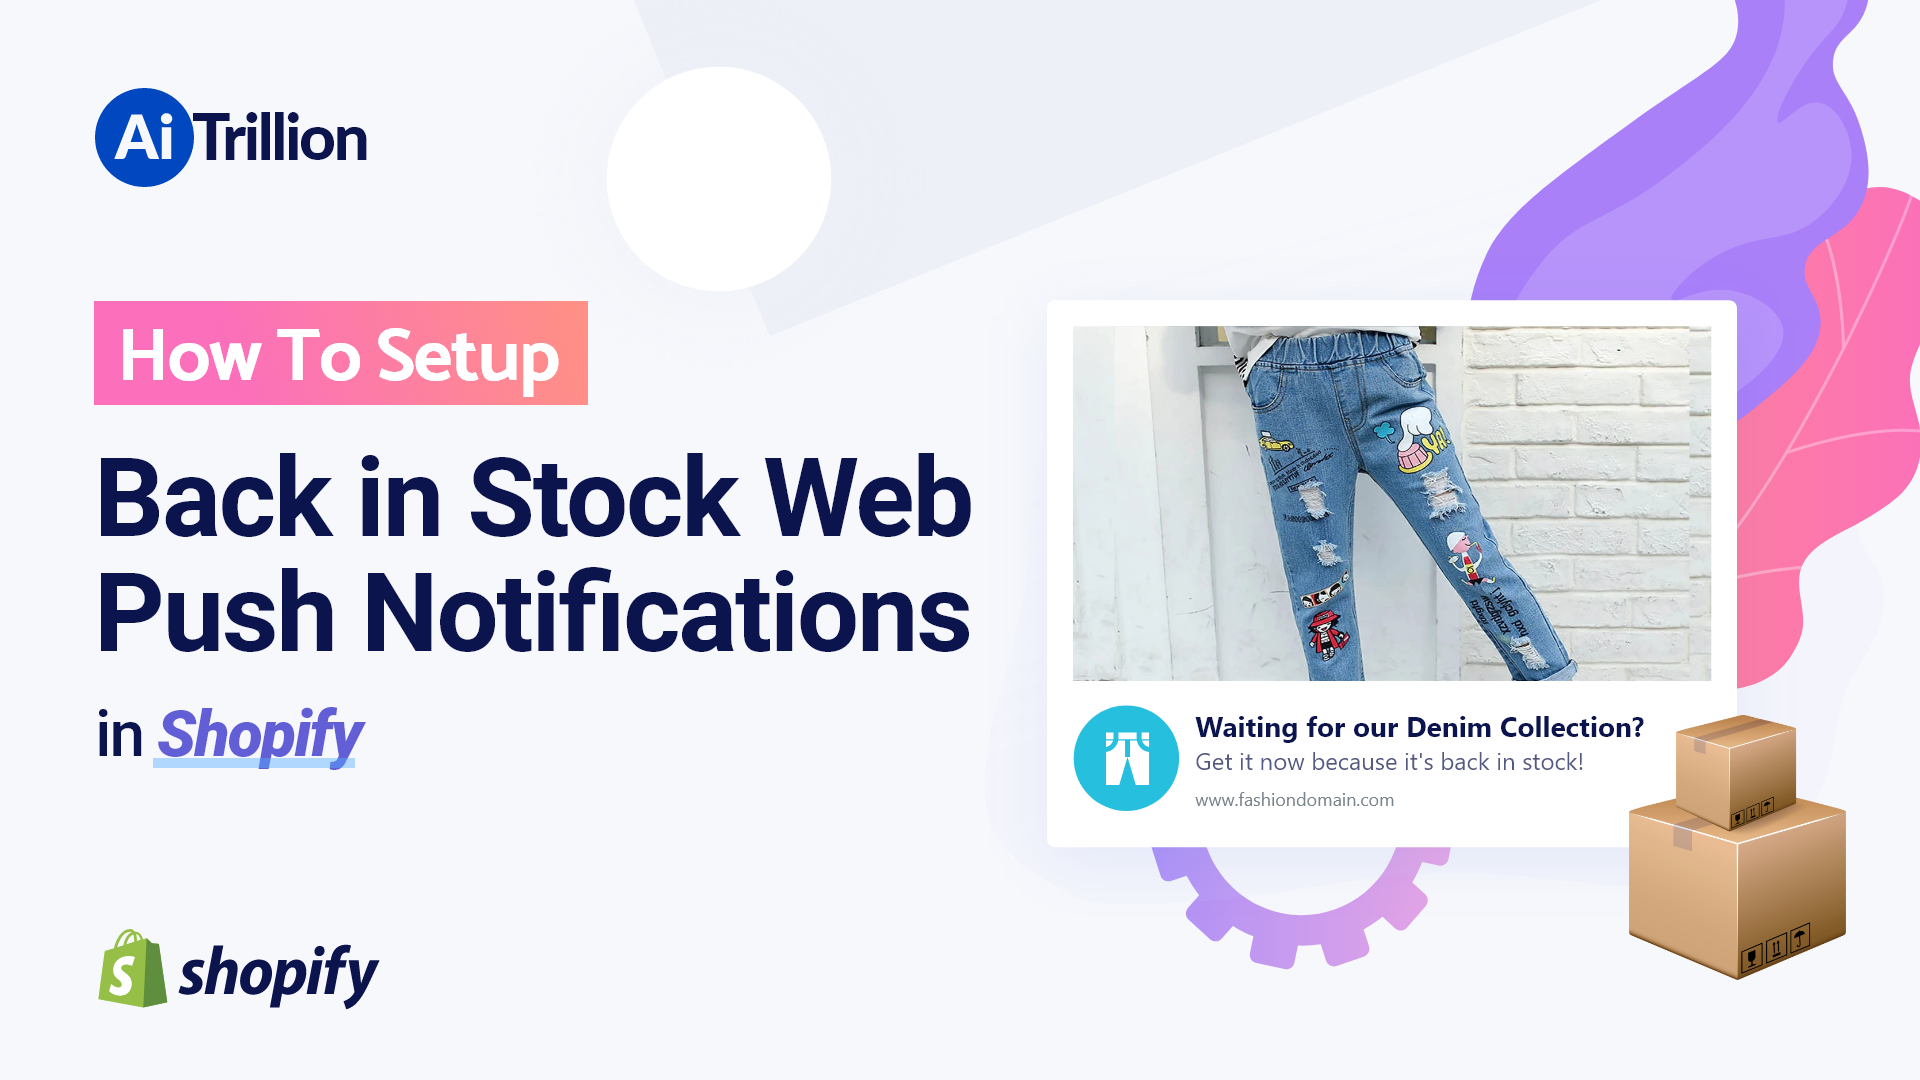 How To Setup Back in Stock Web Push Notifications